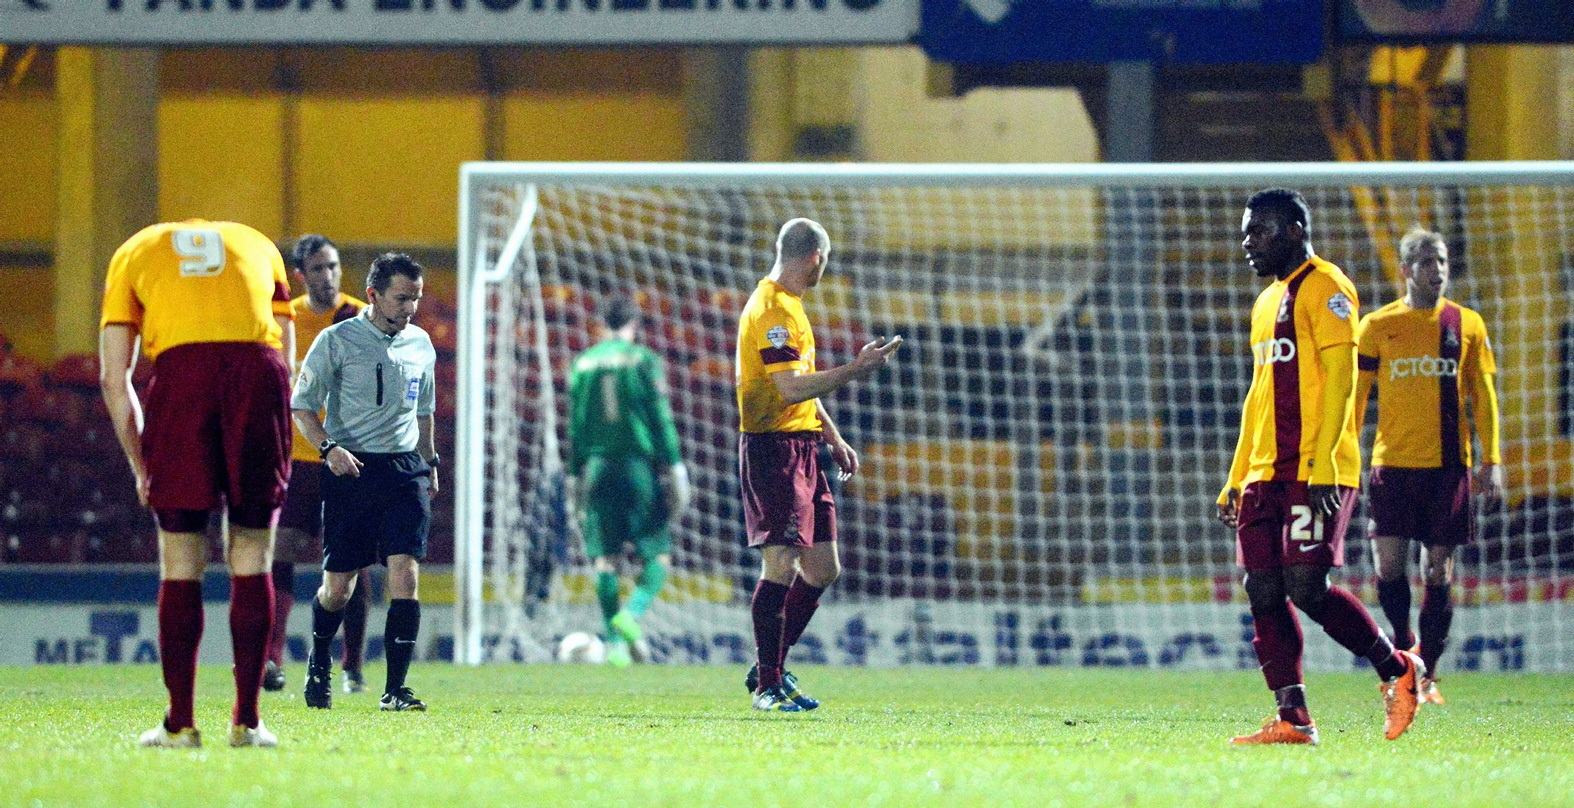 Final whistle prompts boos all round for shot-shy Bradford City